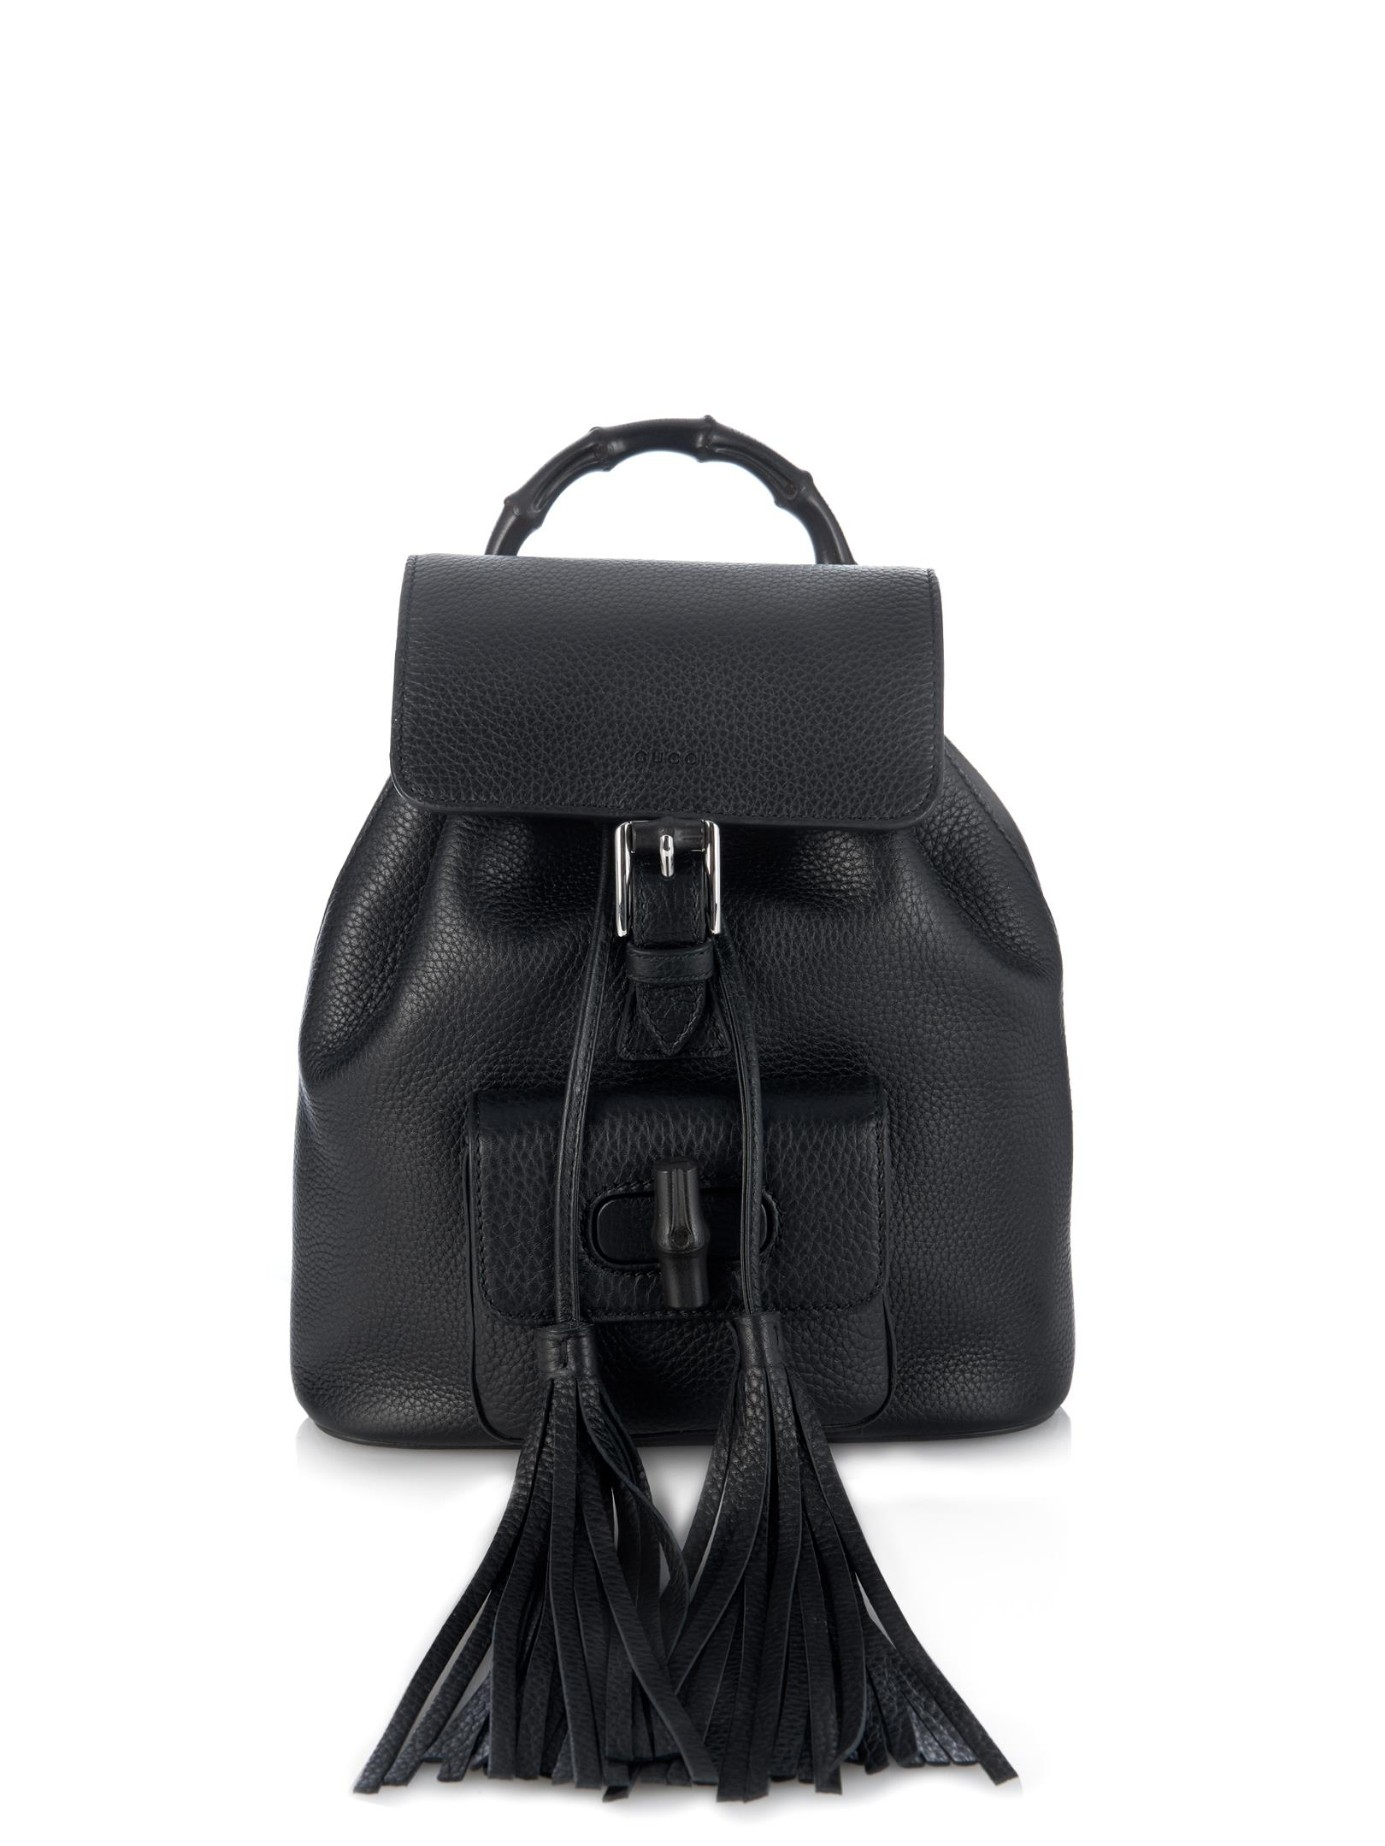 Lyst - Gucci Bamboo Mini Leather Backpack in Black 1795f6e6bb